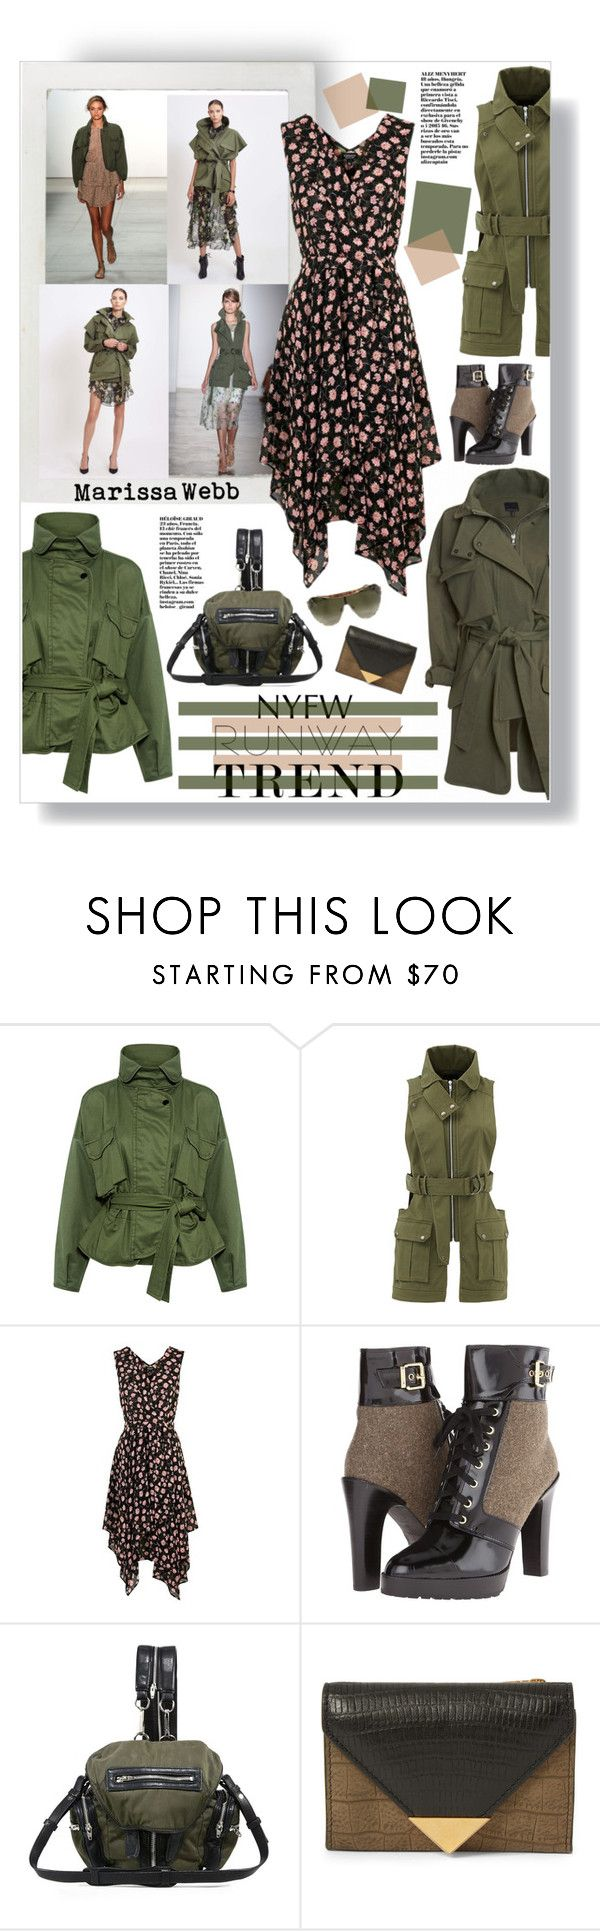 """""""Military Jacket"""" by mmk2k ❤ liked on Polyvore featuring Marissa Webb, Topshop, Diesel, Alexander Wang, Roberto Cavalli, NYFW, jacket, military, 2017 and runwaytrend"""